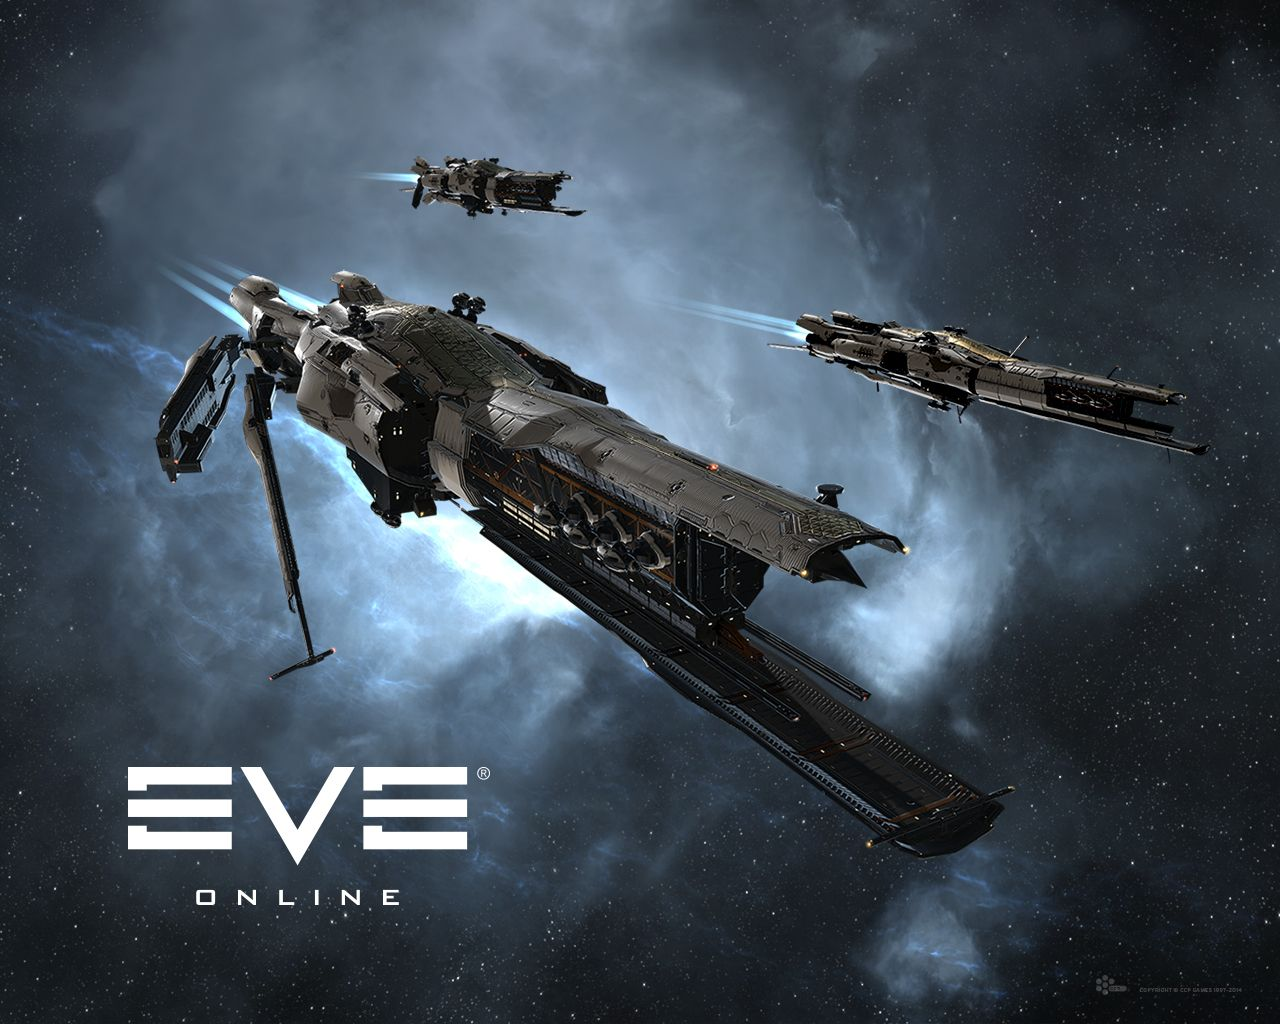 wallpapers ships nebulas and breathtaking scenes eve online